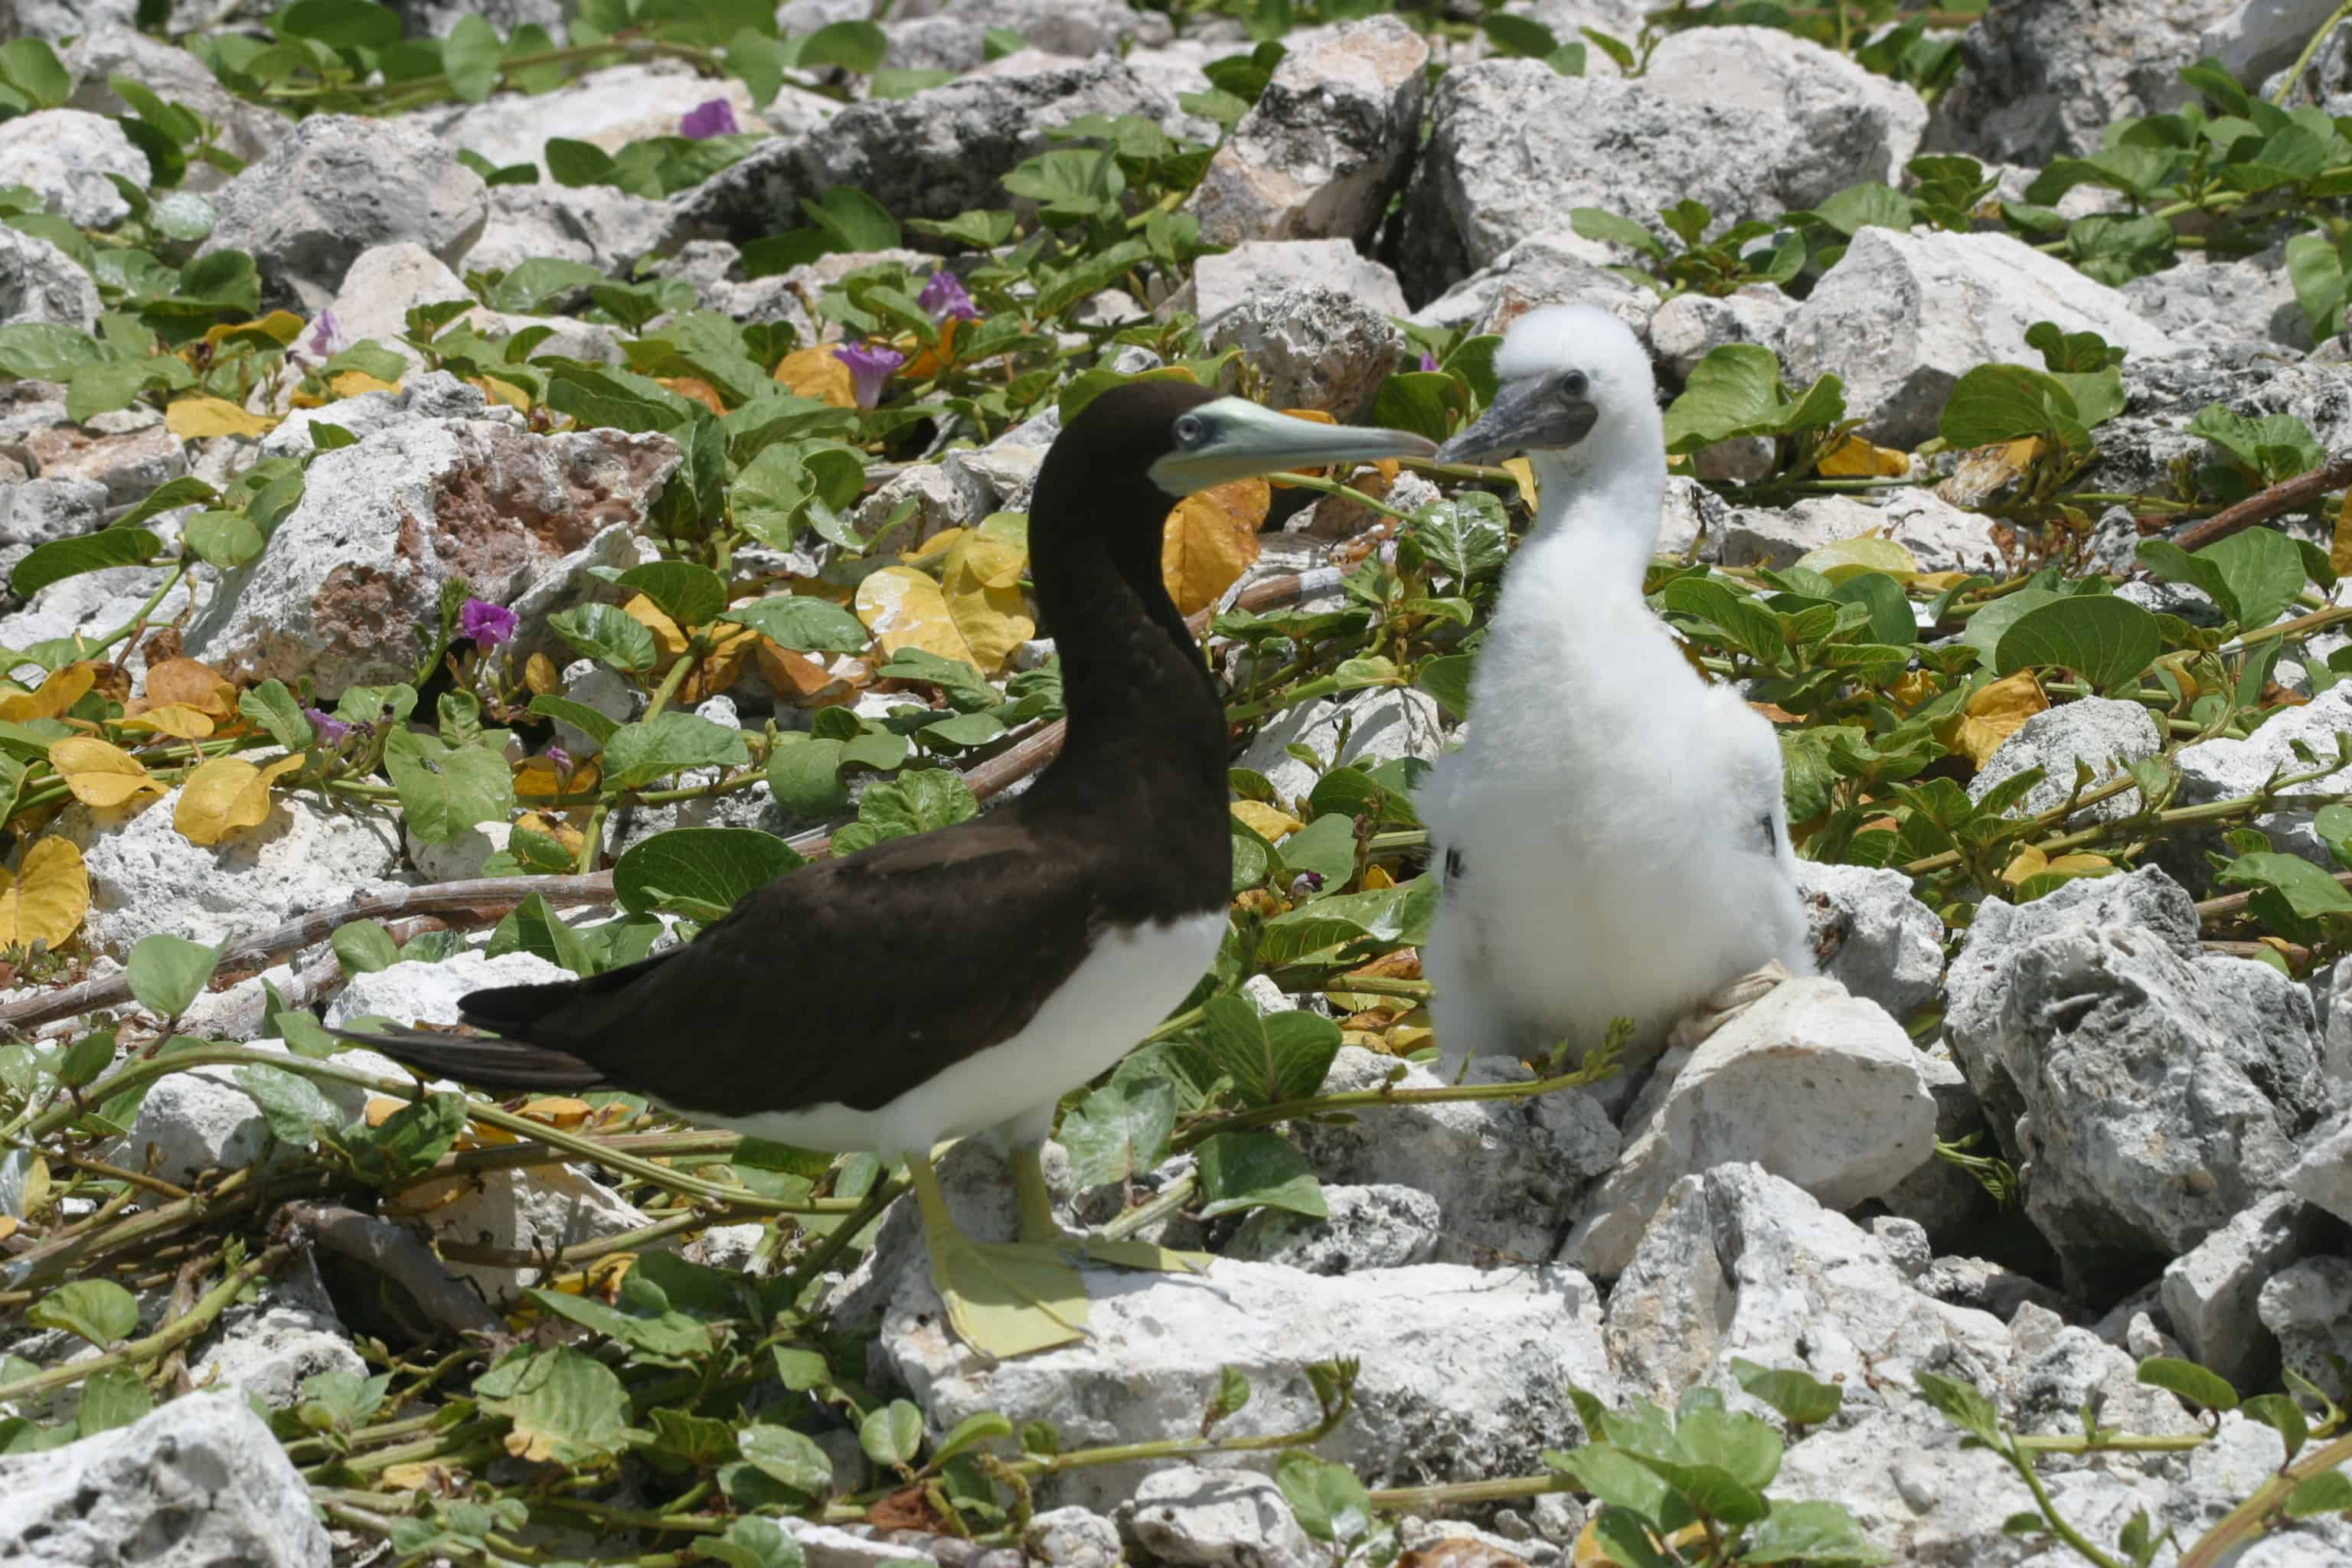 Brown booby with chick, Sombrero. Copyright: Dr Mike Pienkowski